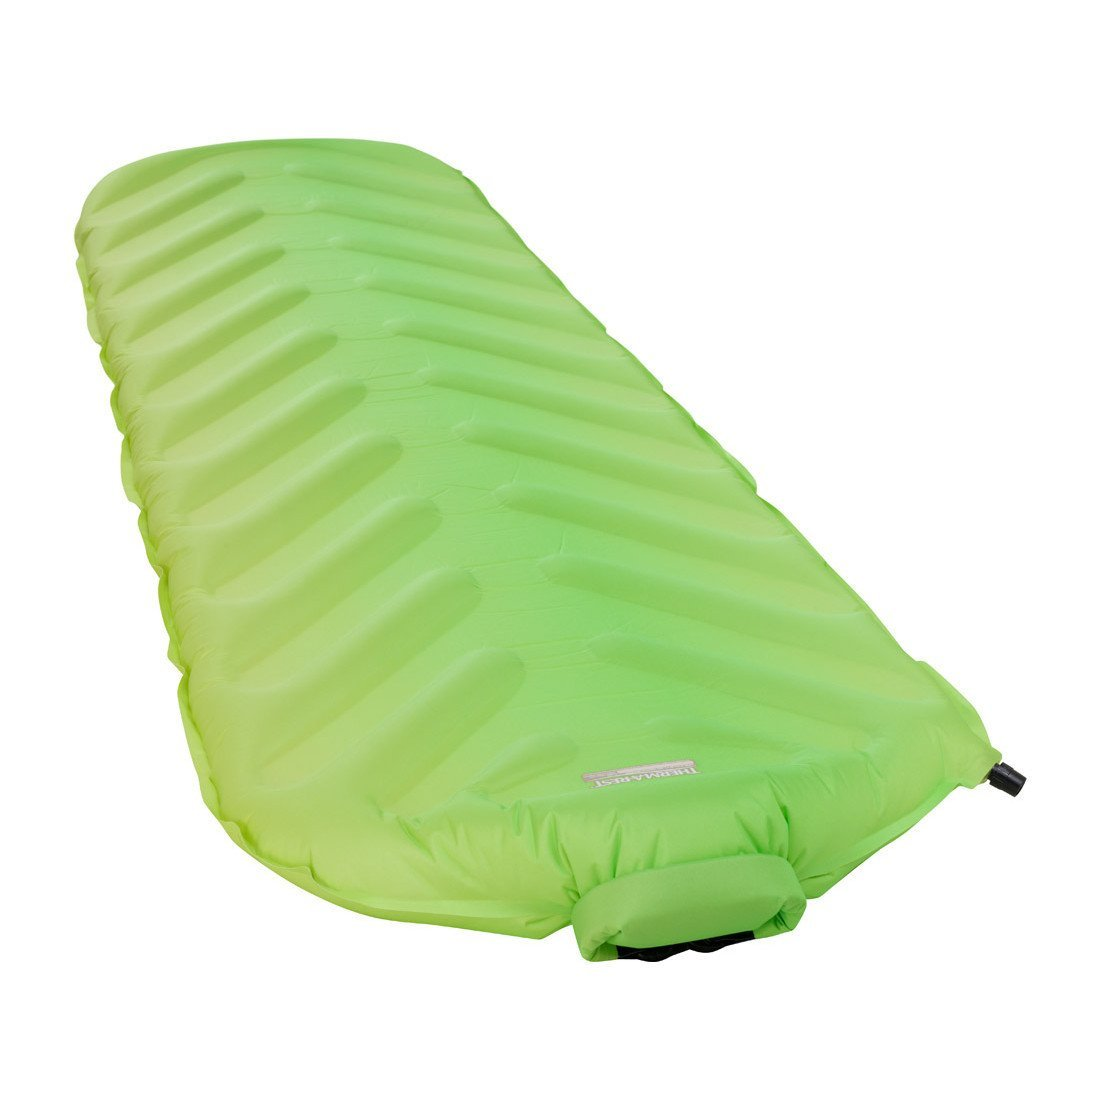 Thermarest Trail King SV Regular camping mat, shown inflated and laid flat in green colour